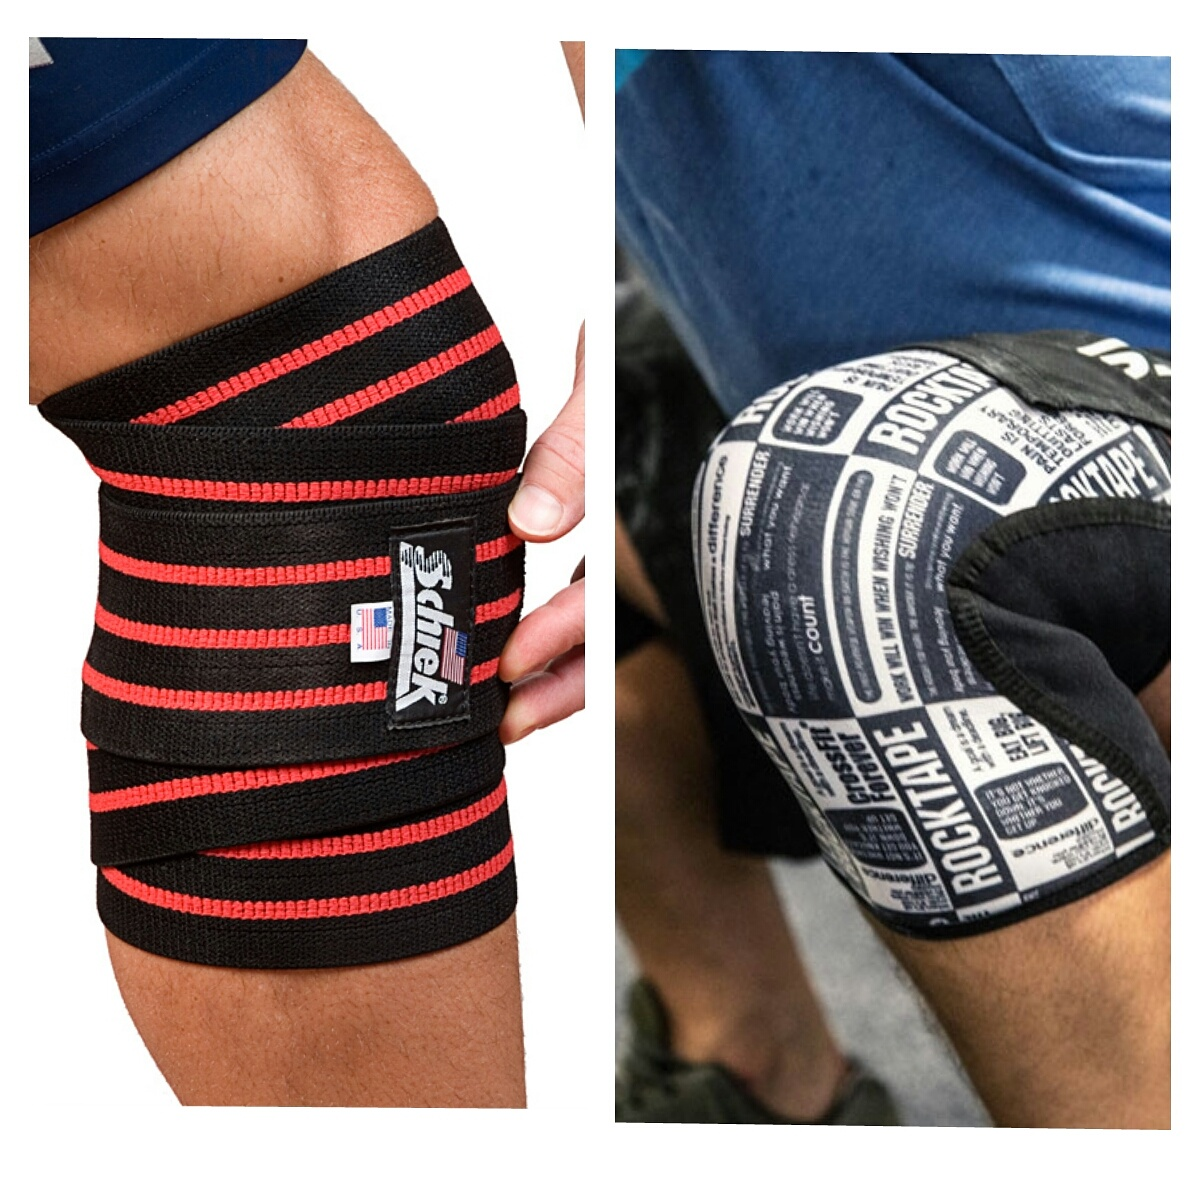 Should you use a Knee Wrap or a Knee Sleeves?